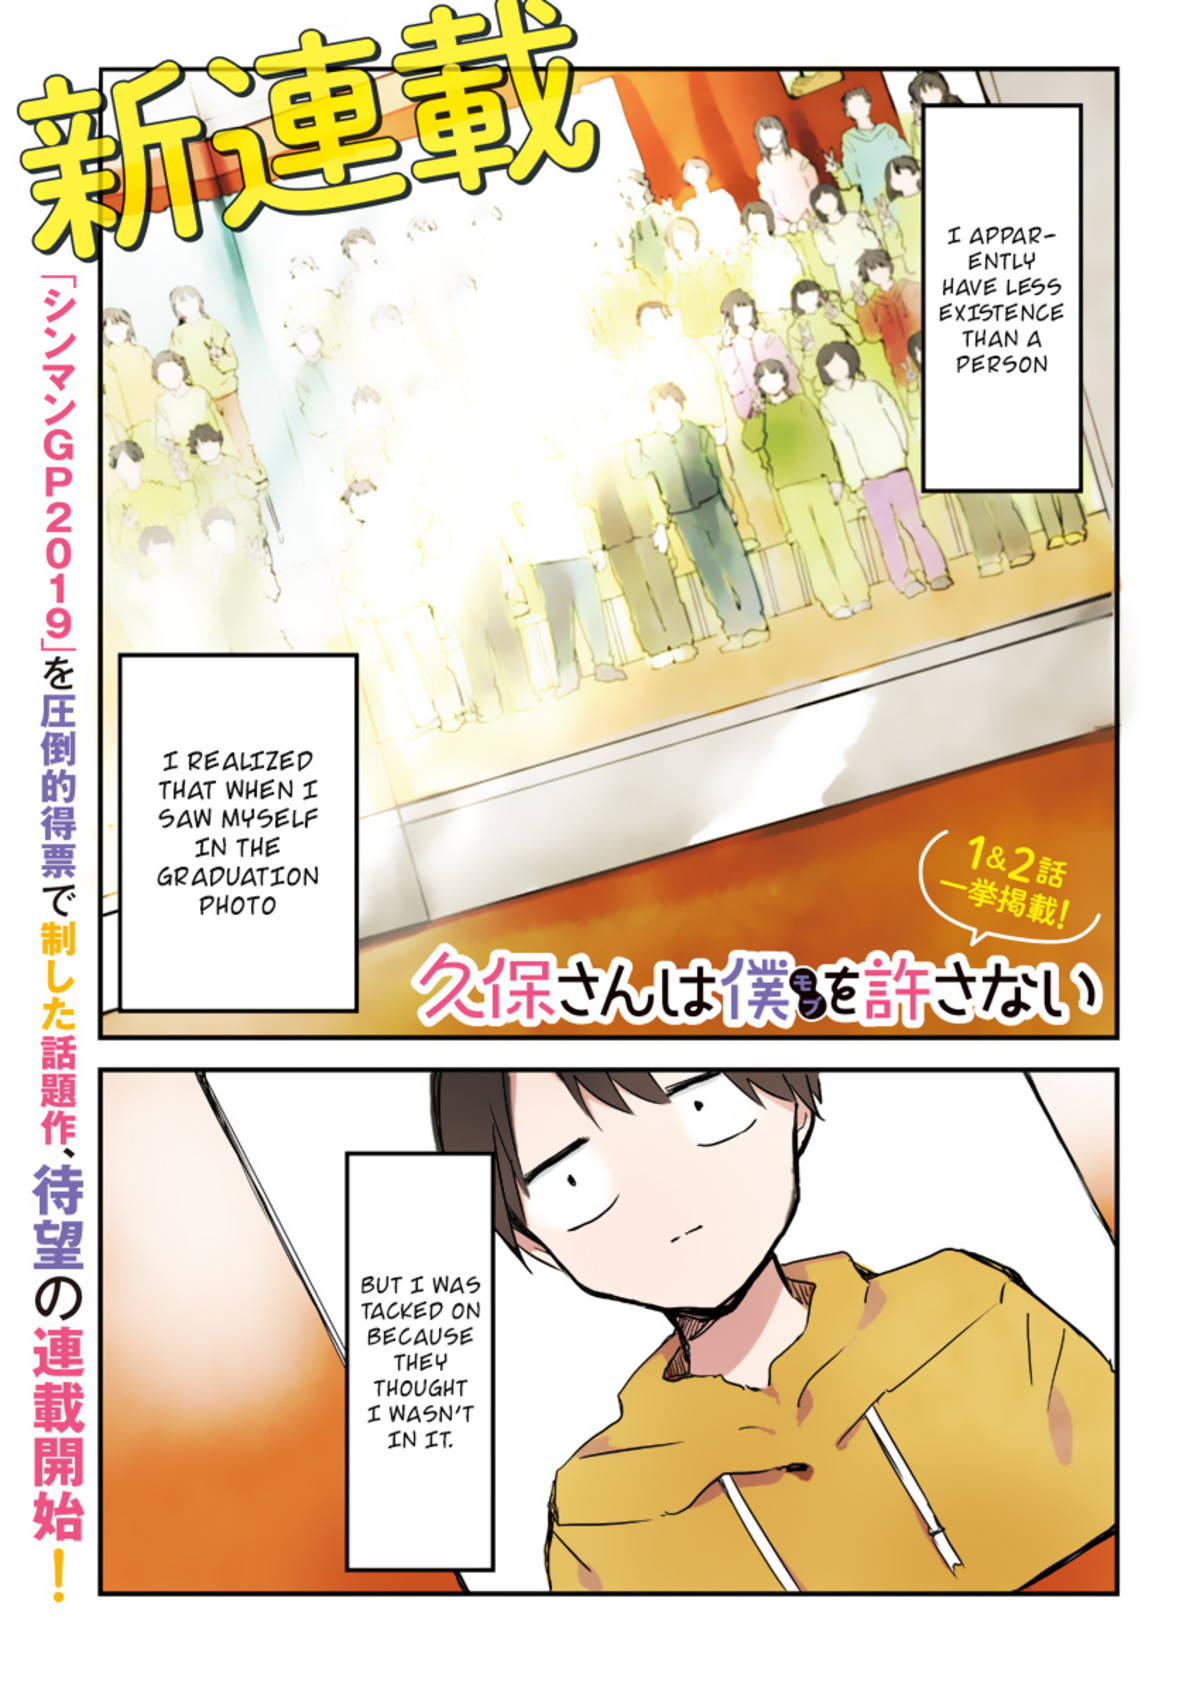 Kubo-san wa Boku (Mobu) wo Yurusanai Ch. 1 and 2. Sauce: join list: SinsRomanceParaphernalia (86 subs)Mention Clicks: 1792Msgs Sent: 2337Mention History.. He just needs to have a weird flower-looking thing on his head and then he'll manage to be completely average